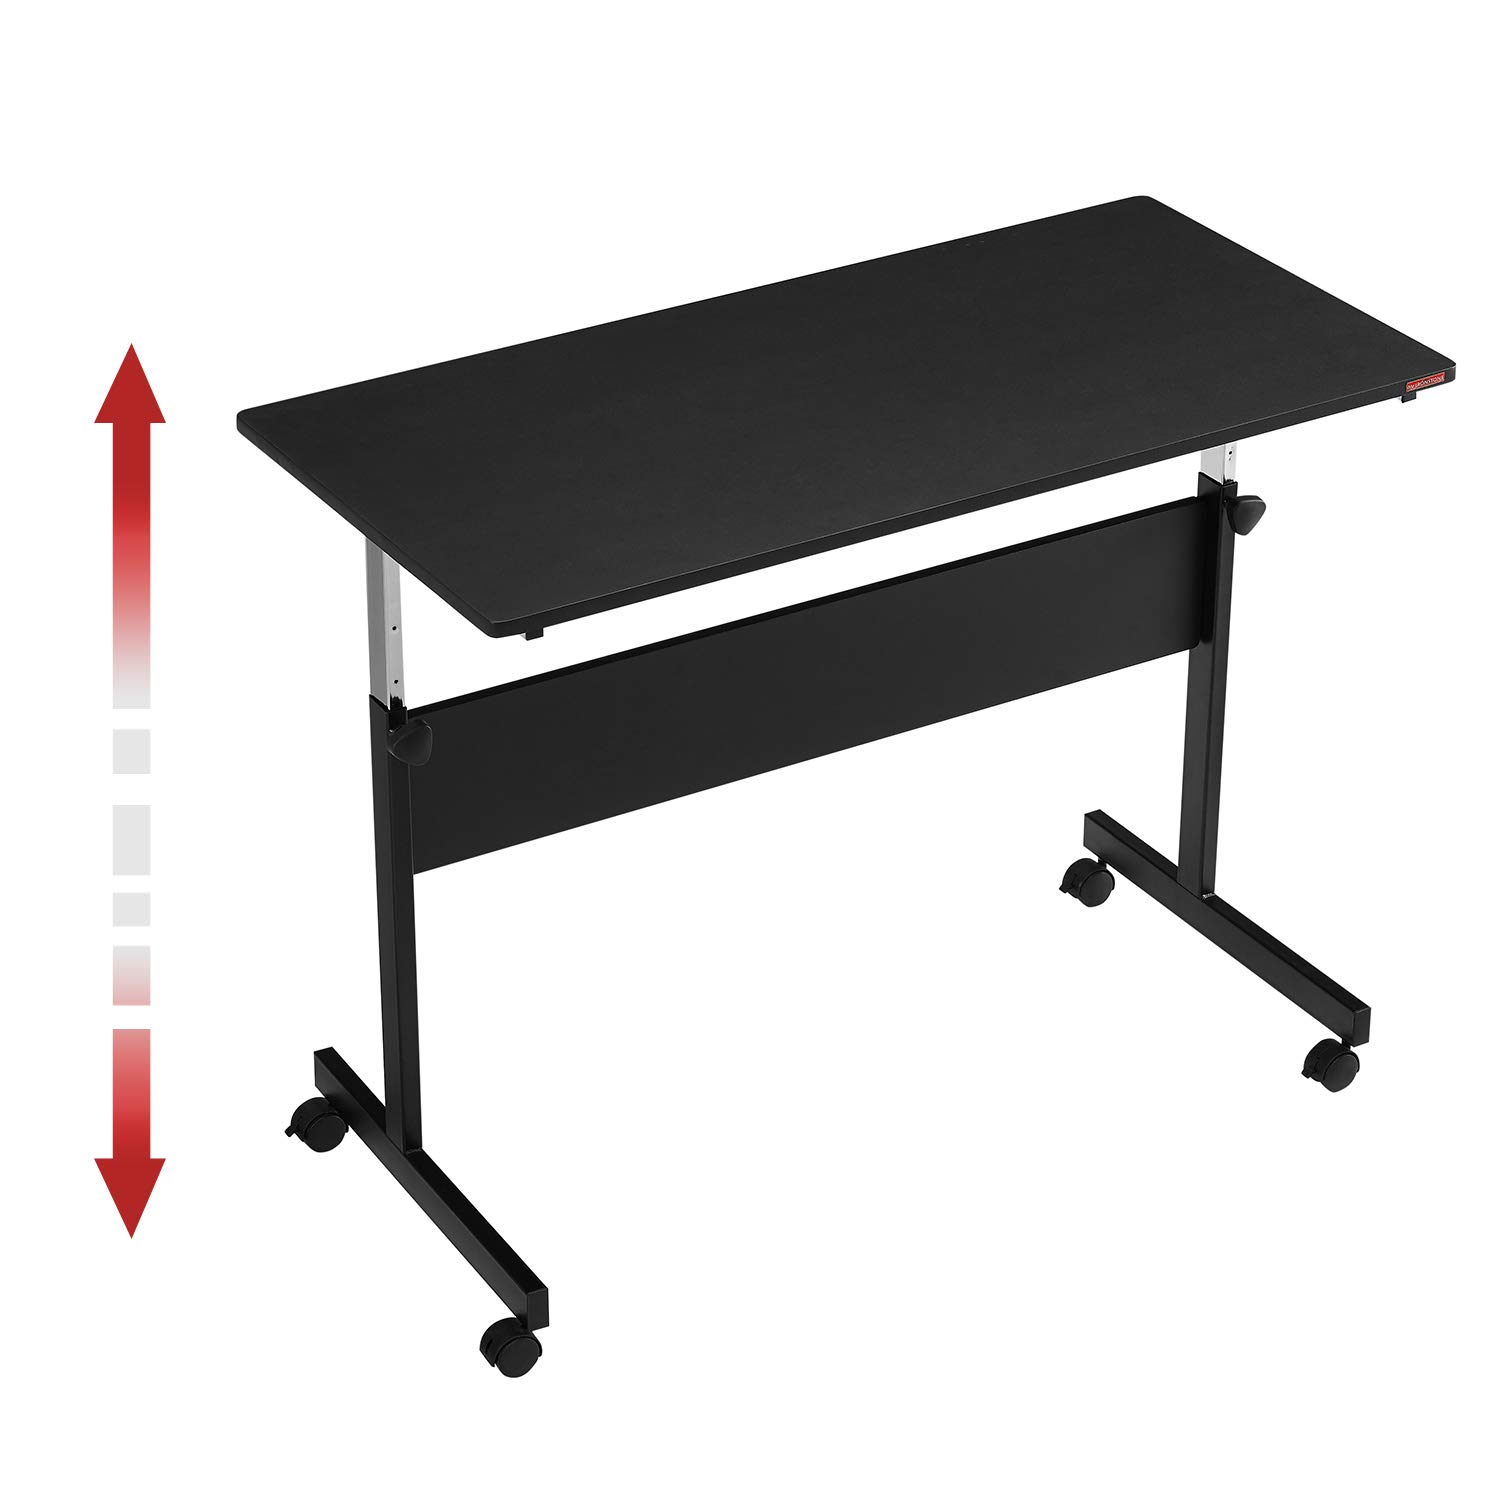 Mr IRONSTONE Height Adjustable Desk Sit-Stand 47.6'' Elevate Mobile Computer Desk Home & Office Utility Table with Rolling Wheels(Black) by Mr IRONSTONE